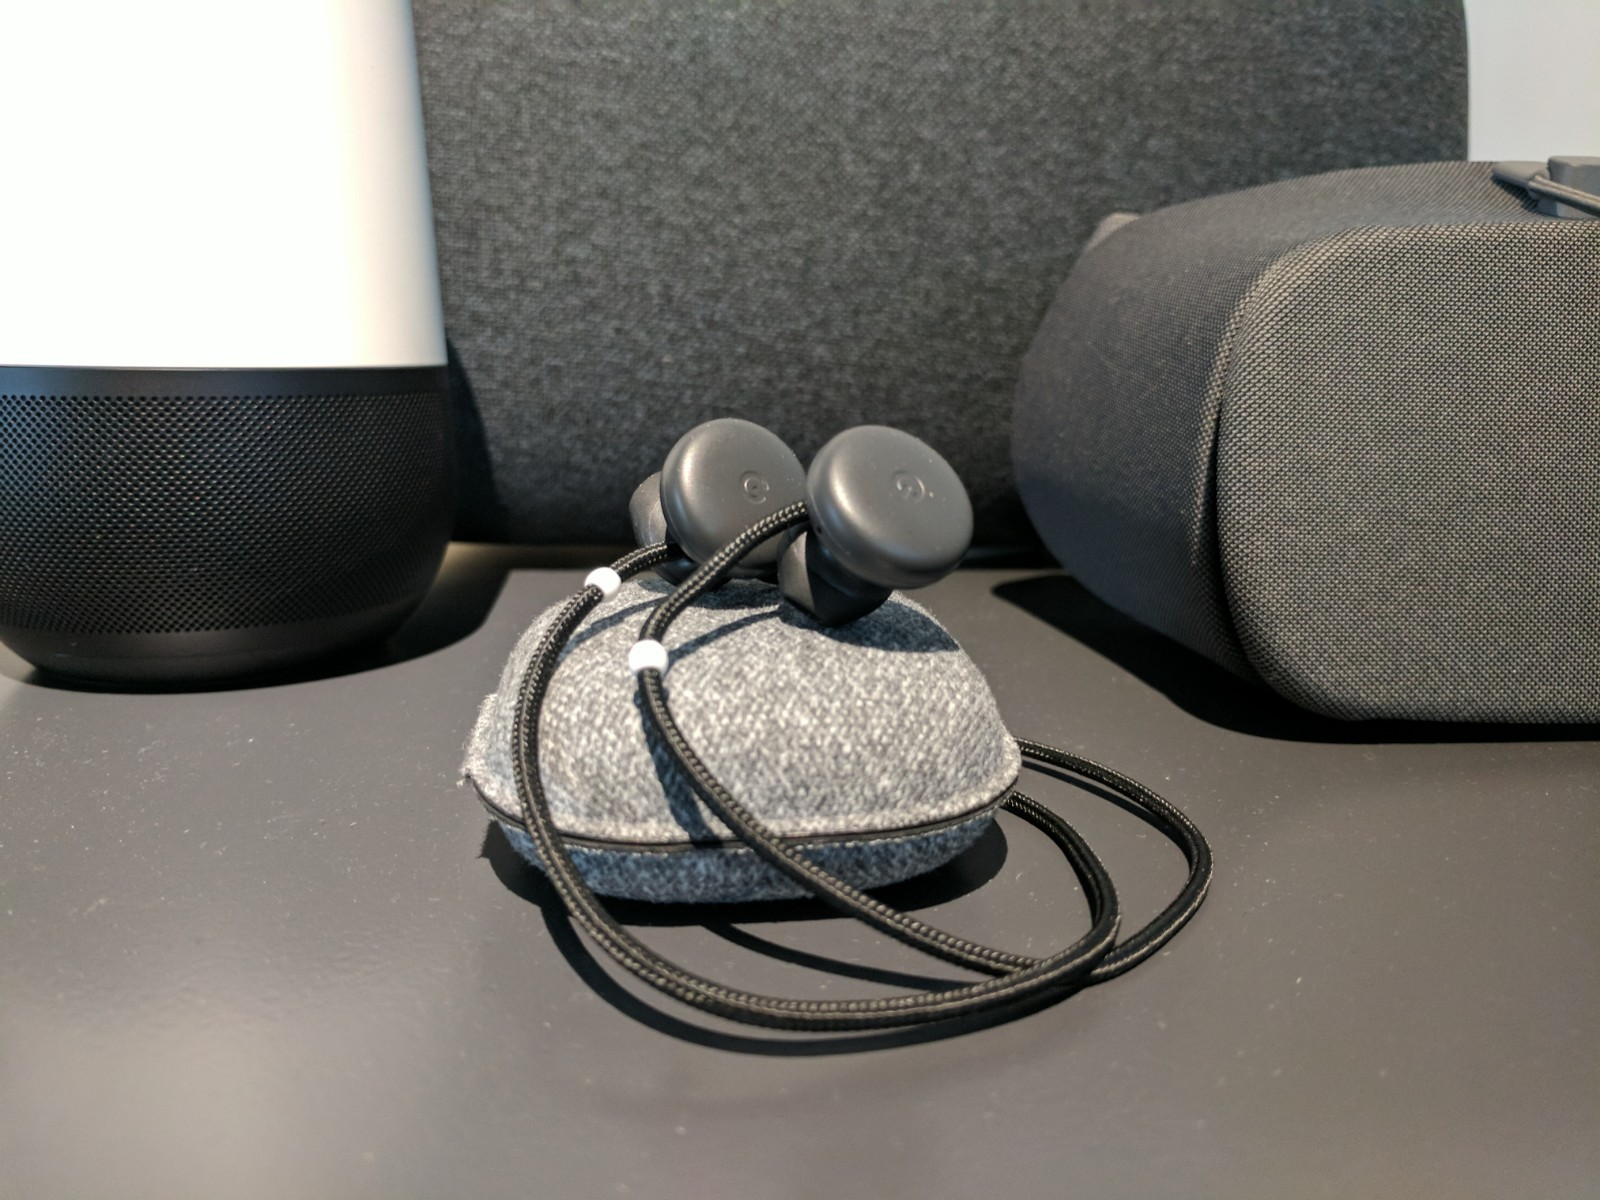 Google Pixel Buds review: Google Assistant makes a home in